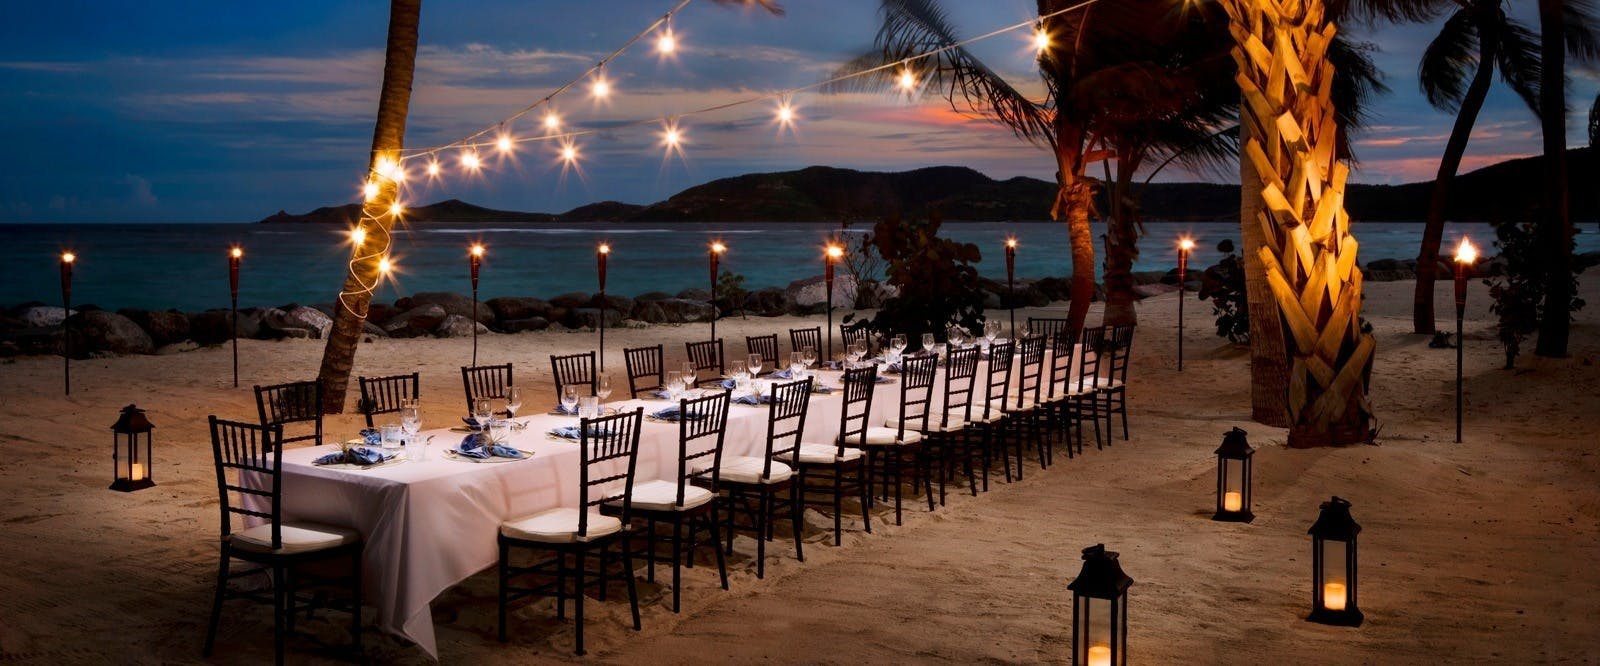 Outdoor dining at Necker Island, British Virgin Islands